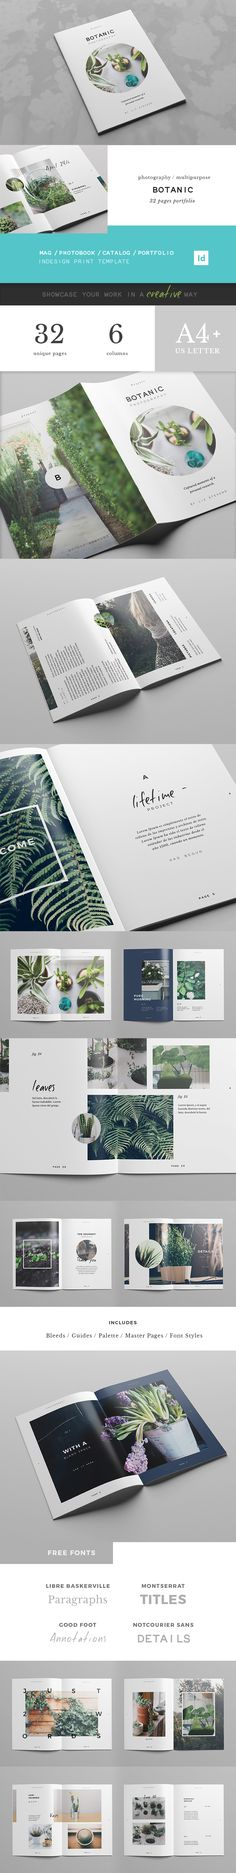 Botanic Portfolio Template on Behance